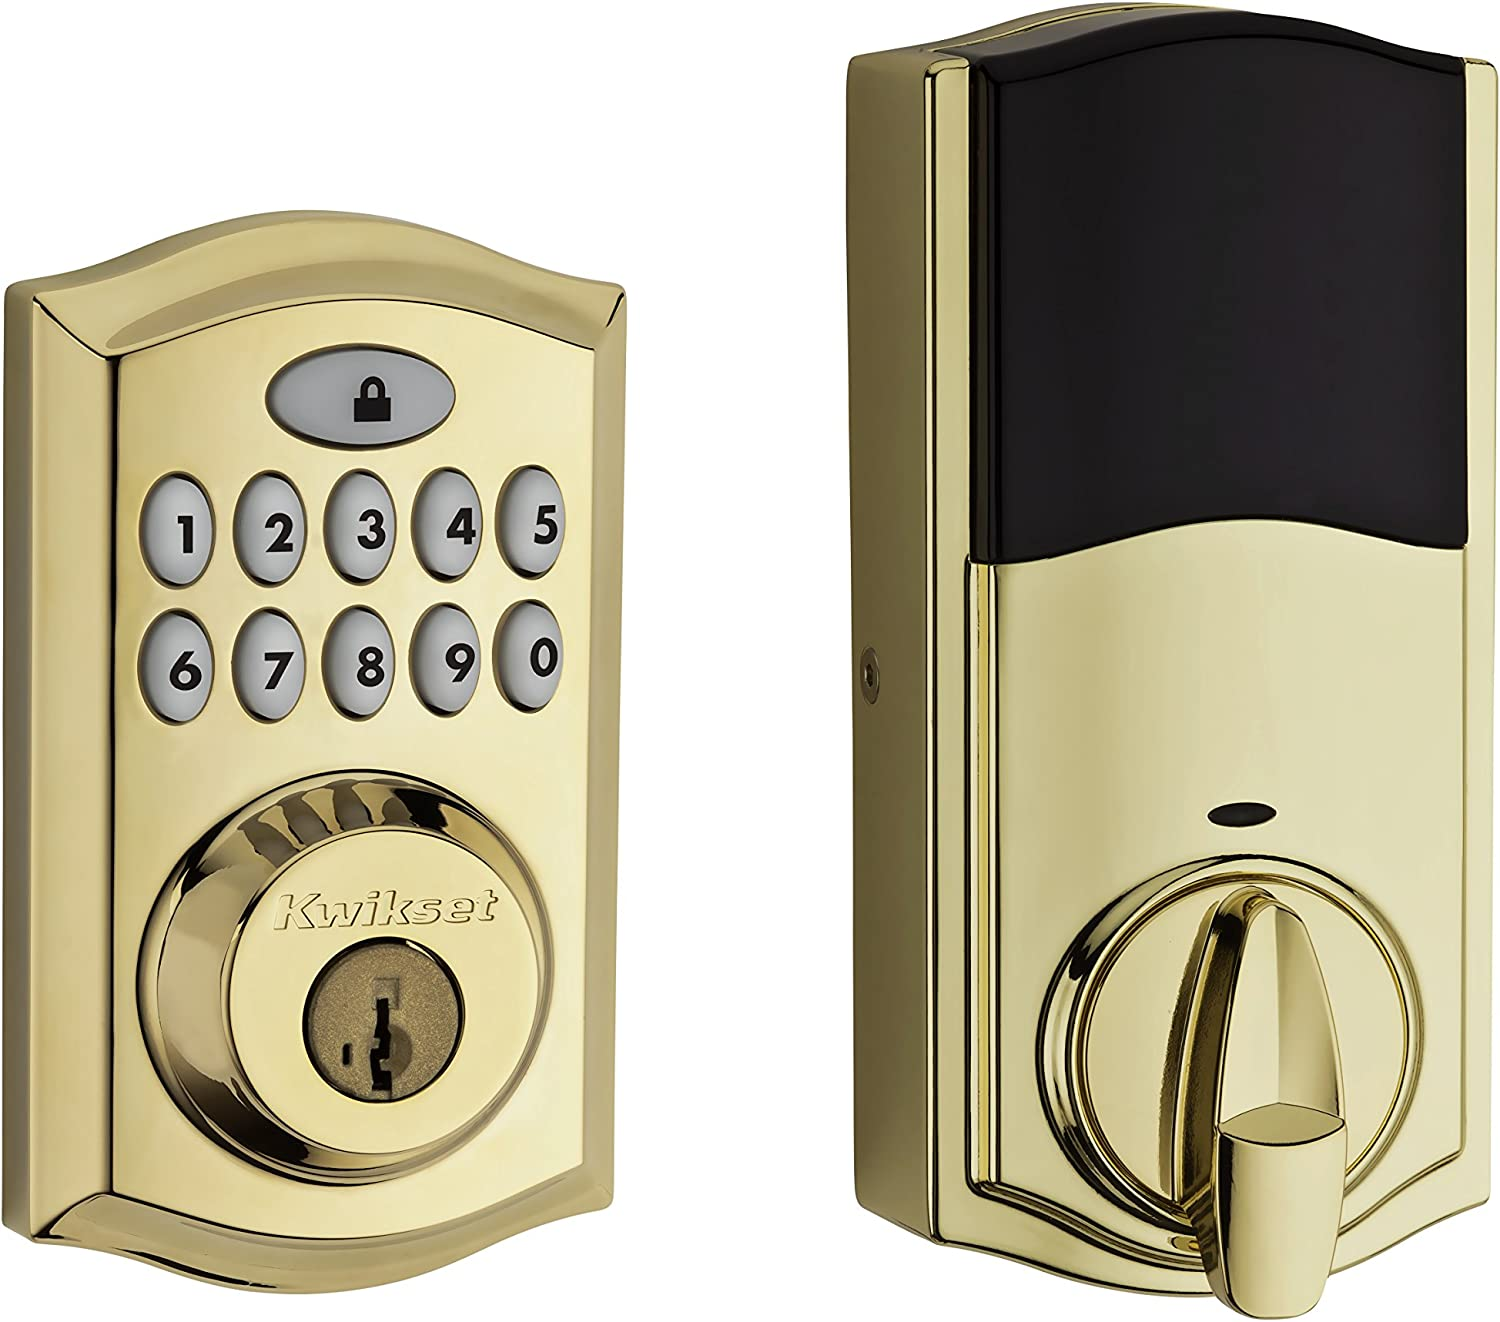 Kwikset 99130-001 SmartCode 913 Non-Connected Keyless Entry Electronic Keypad Deadbolt Door Lock Featuring SmartKey Security, Traditional Polished Brass